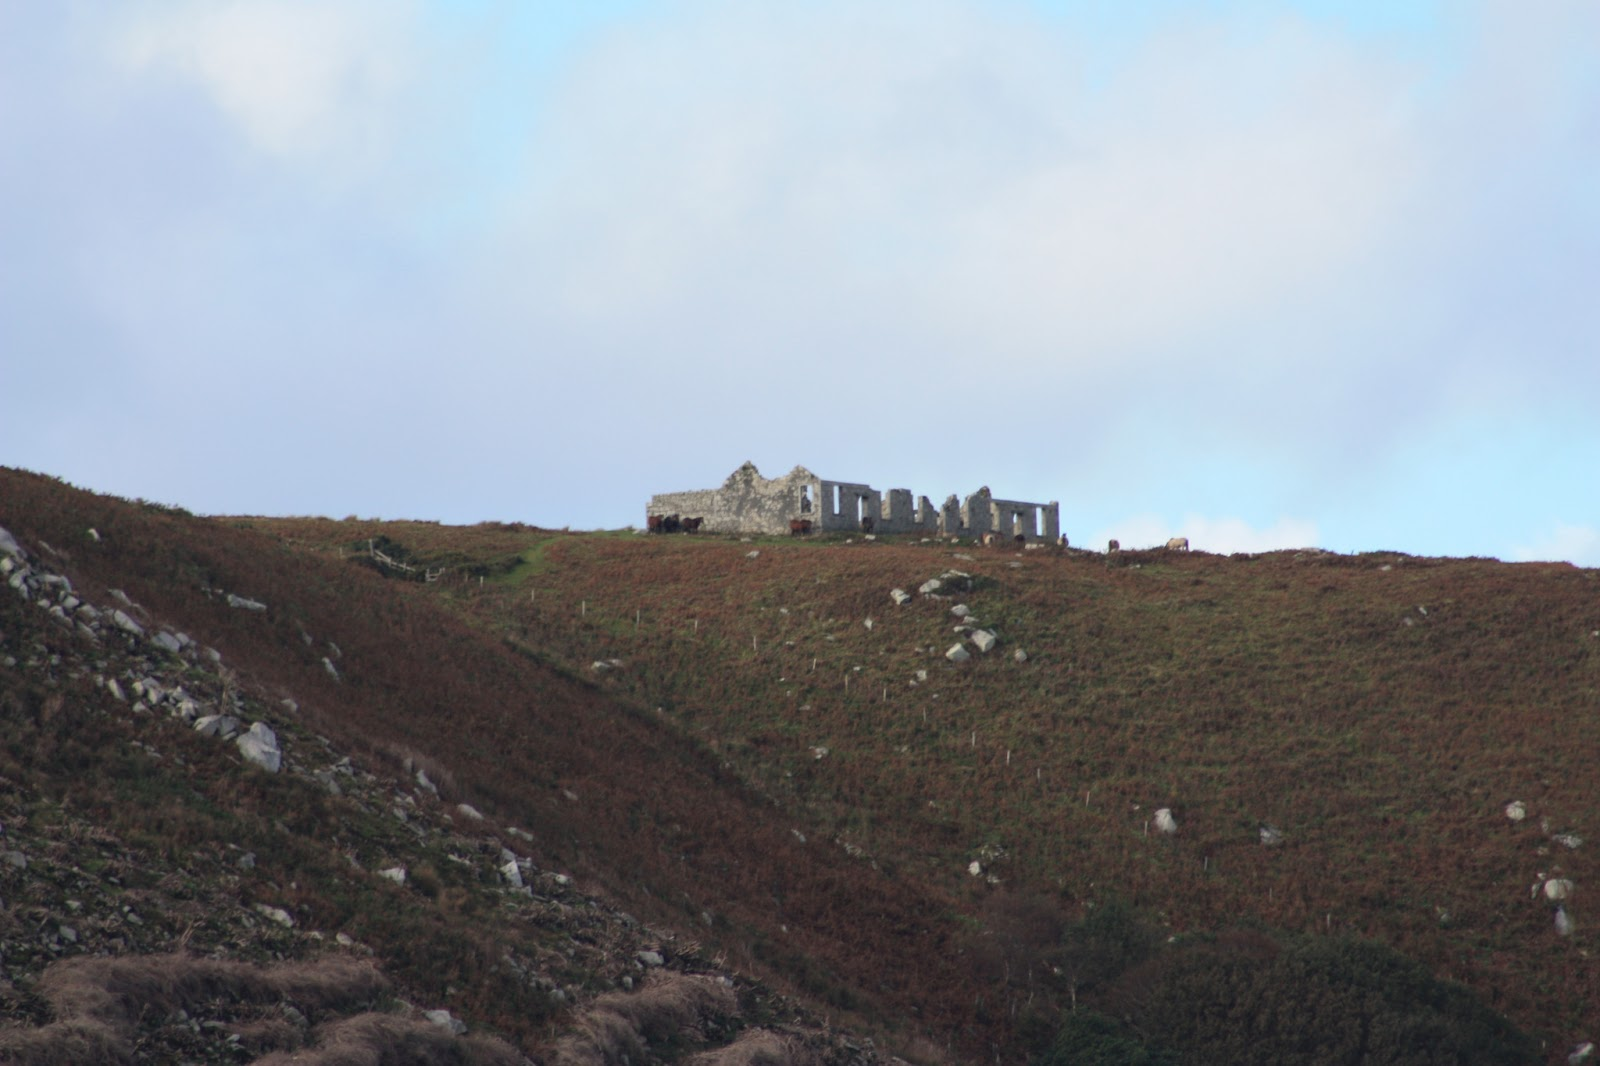 Ruined cottages on a hillside overlooking the sea, but you can't see the sea. It is there, but not in the photo.